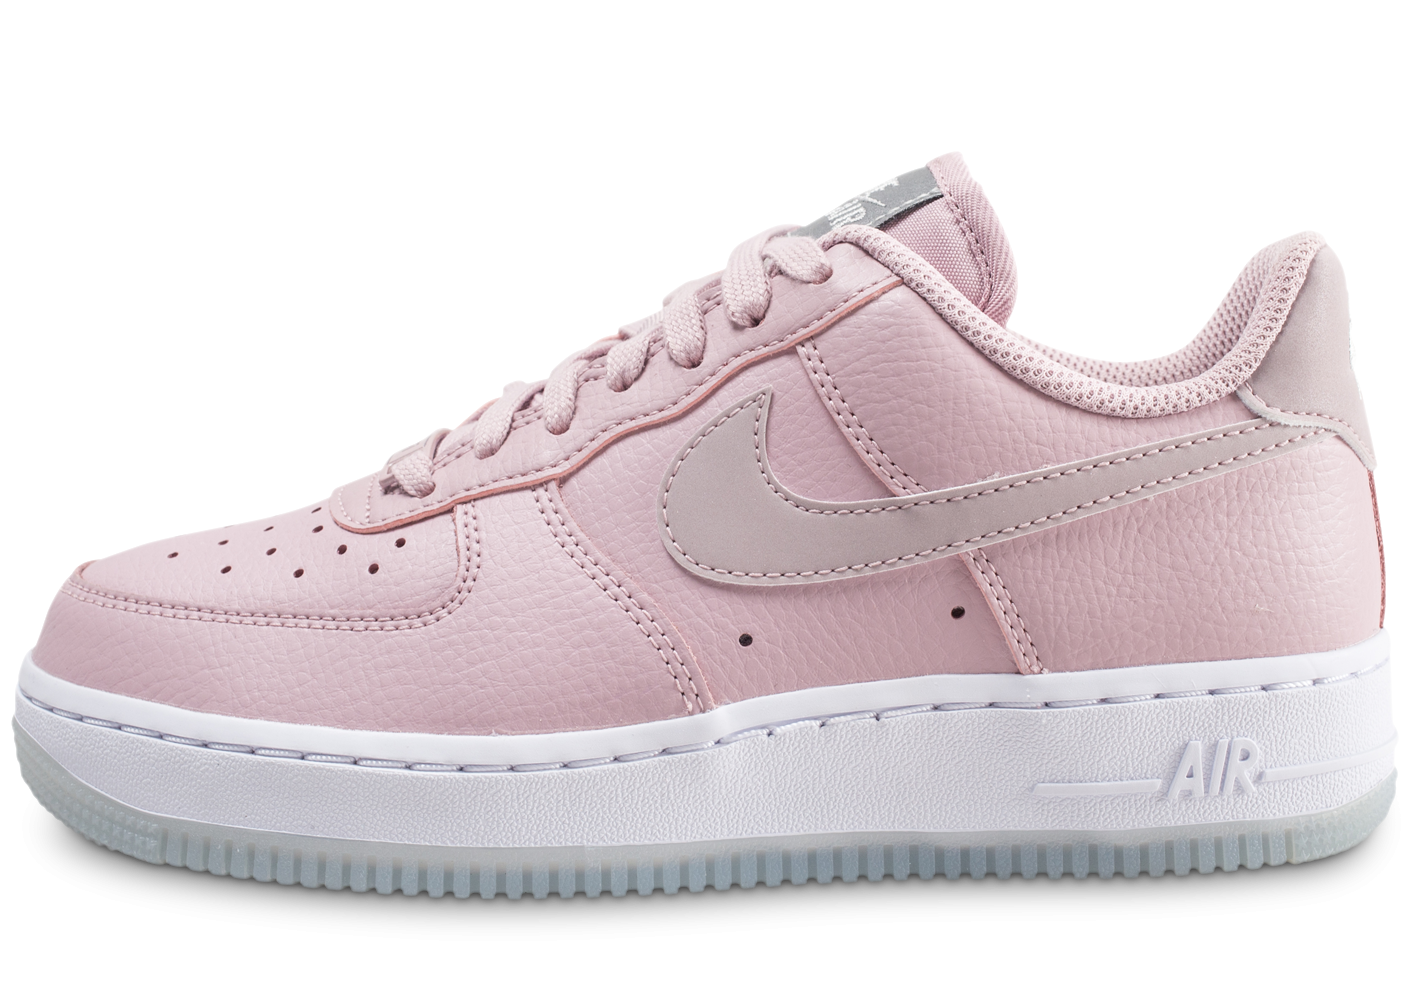 nike air force 1 femme blanc rose